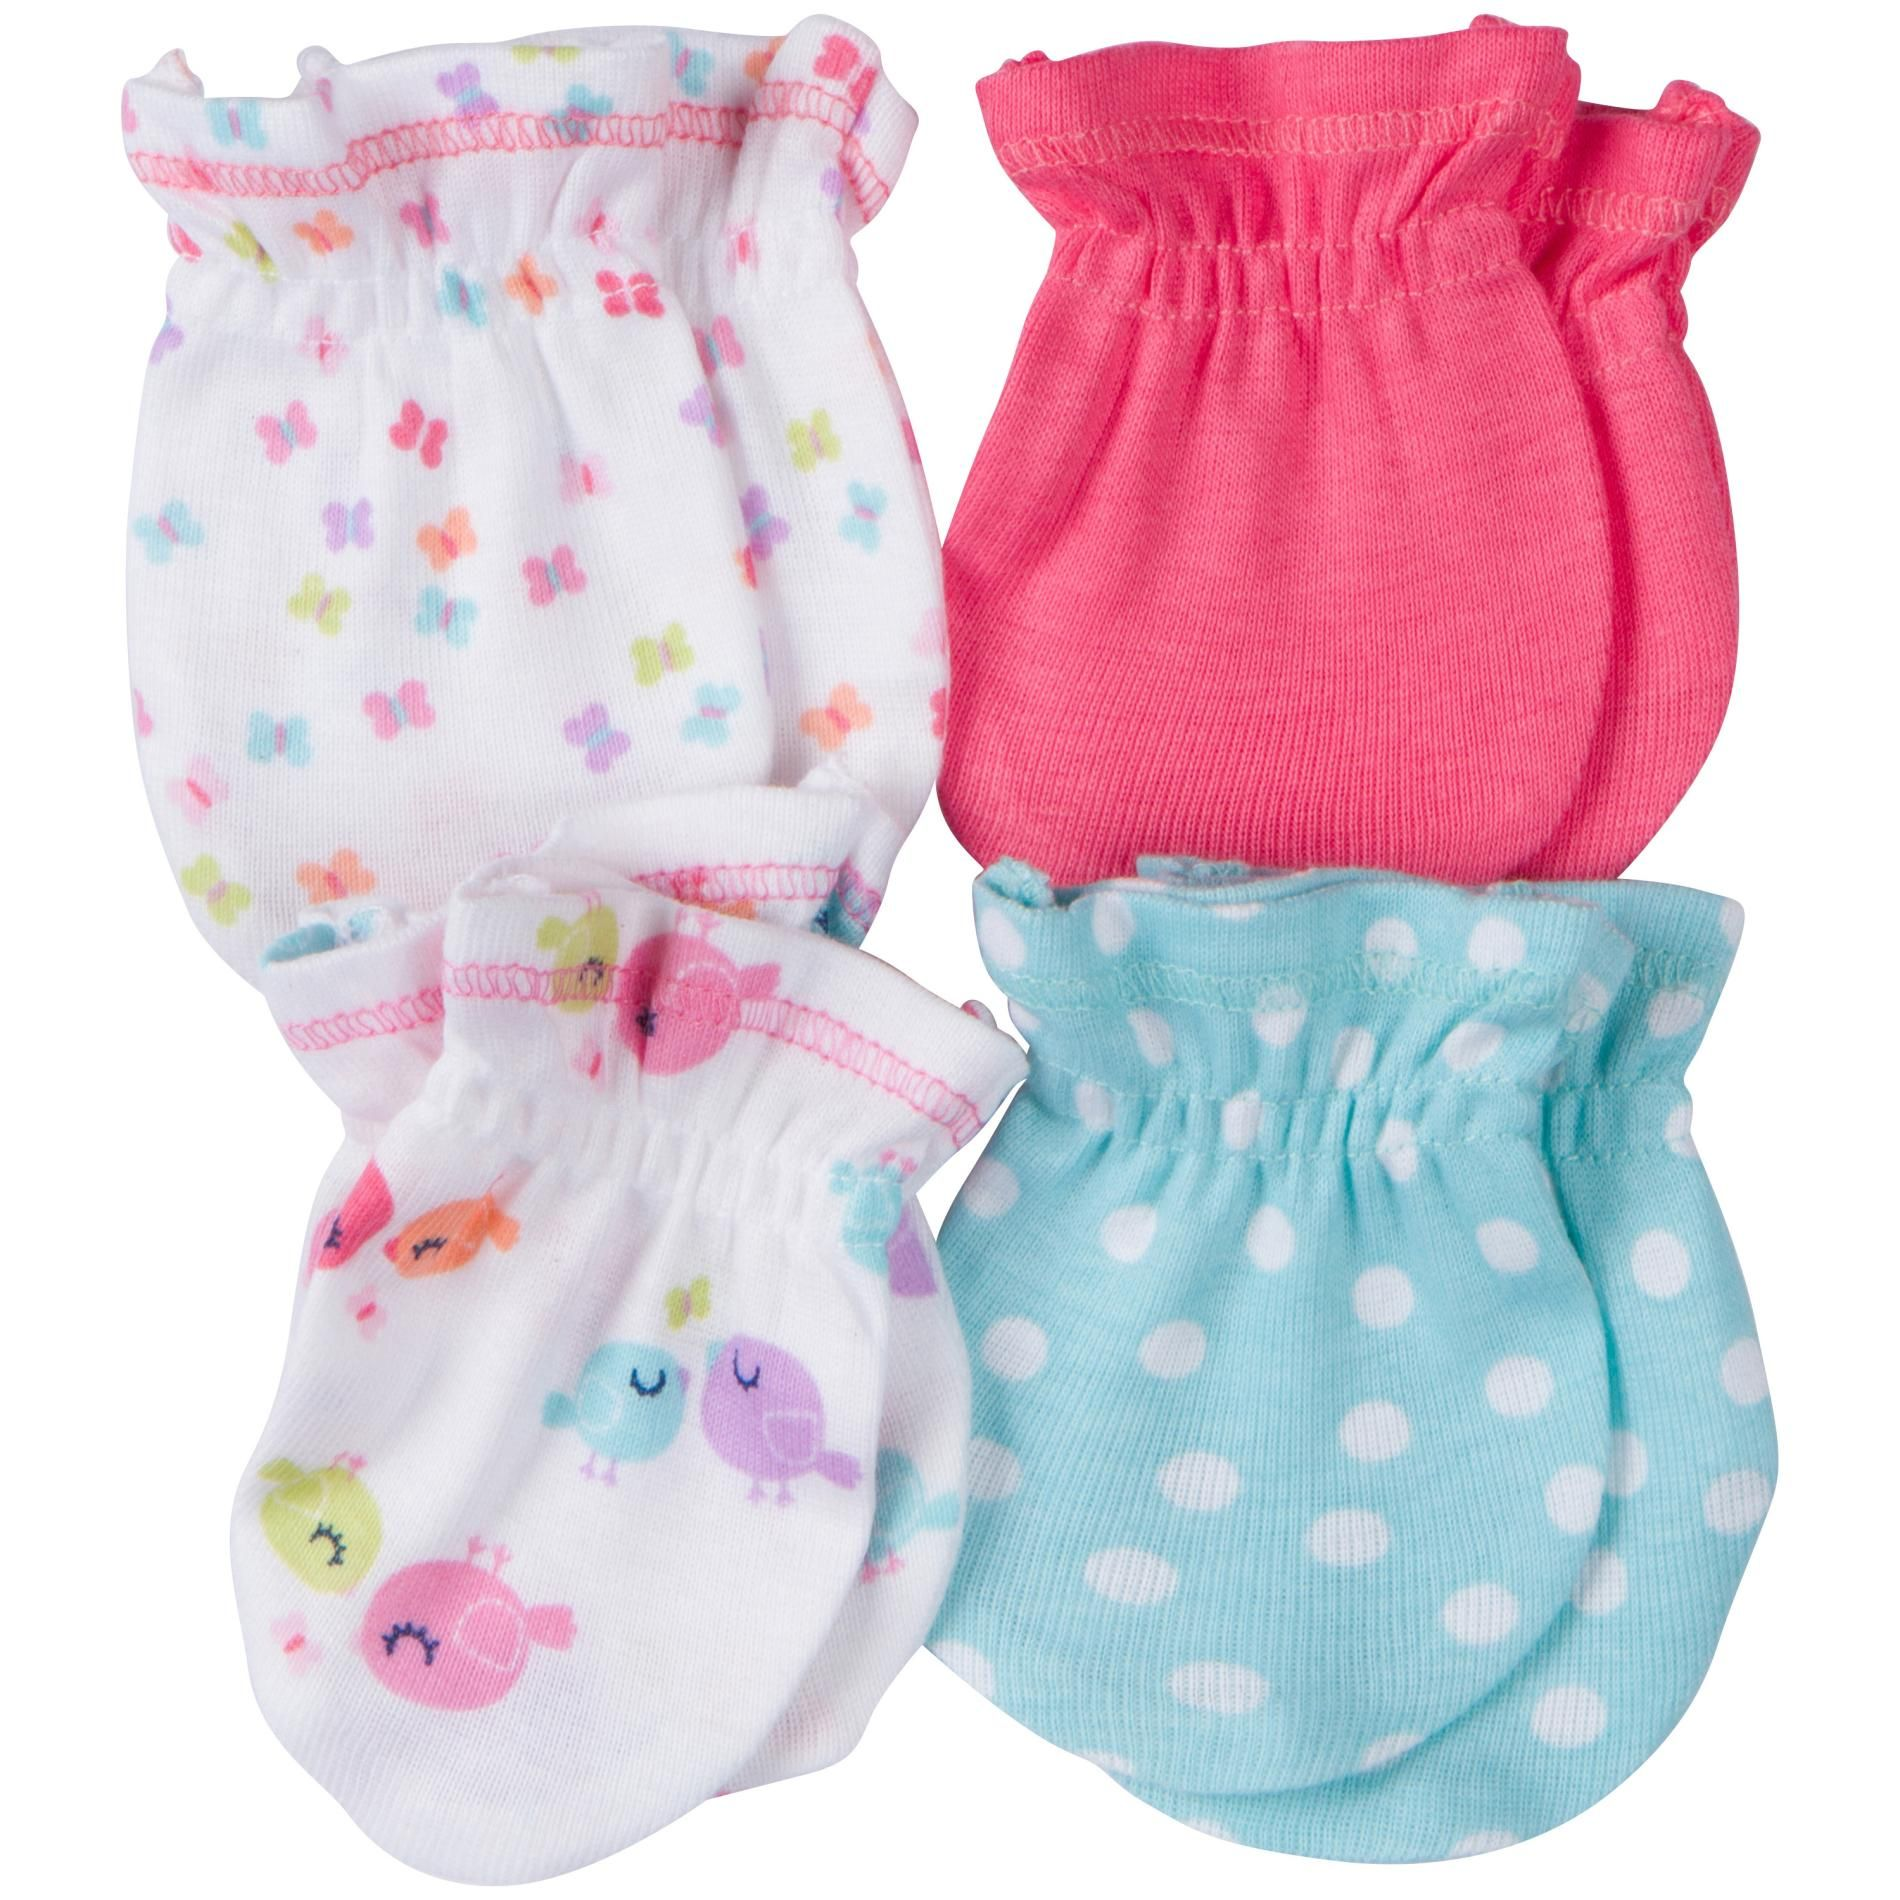 Lovely Images Of Kmart Baby Clothes - Cutest Baby Clothing and ...